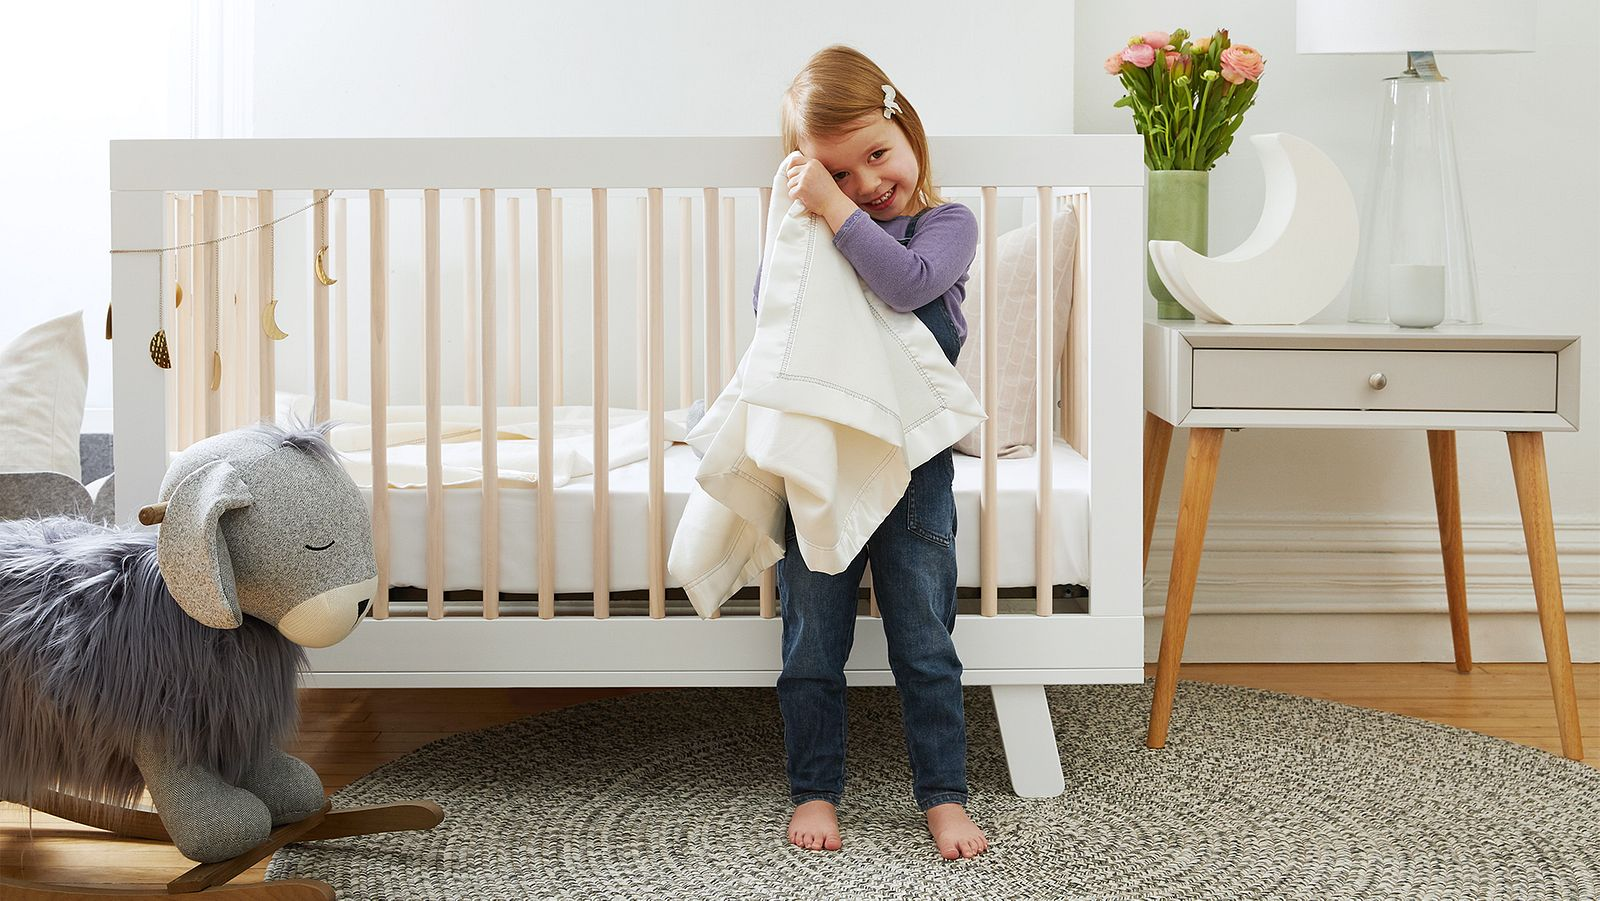 Toddler in her nursery, outside her crib, smiling as she is holding her beloved Ocochi blanket.